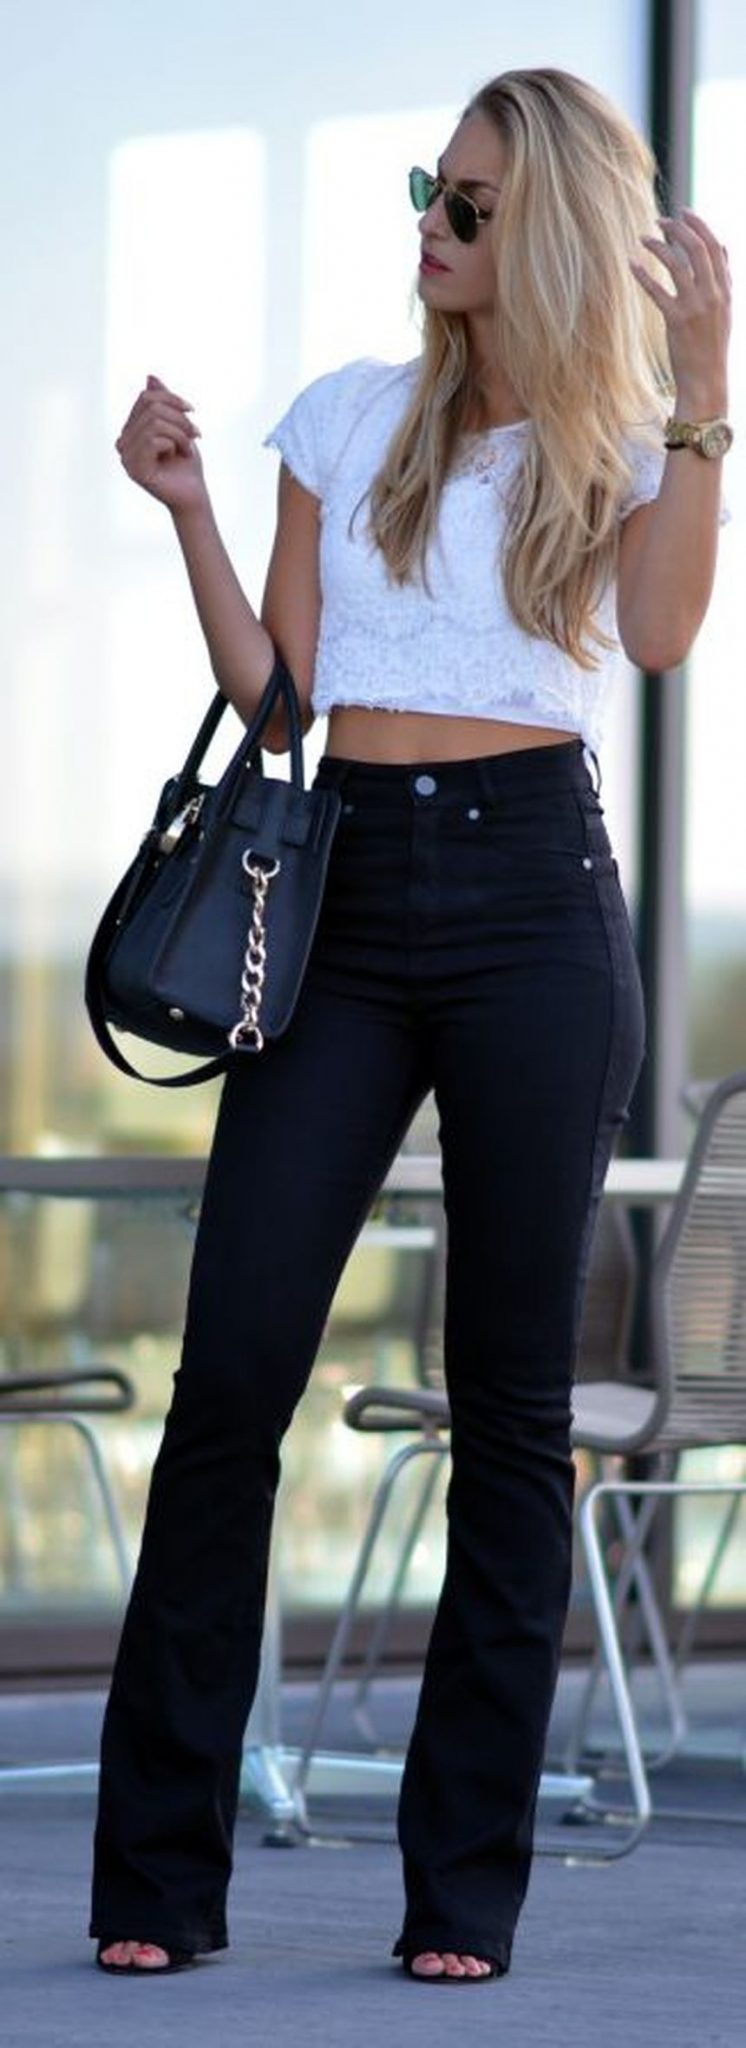 High waisted jeans outfit style 123